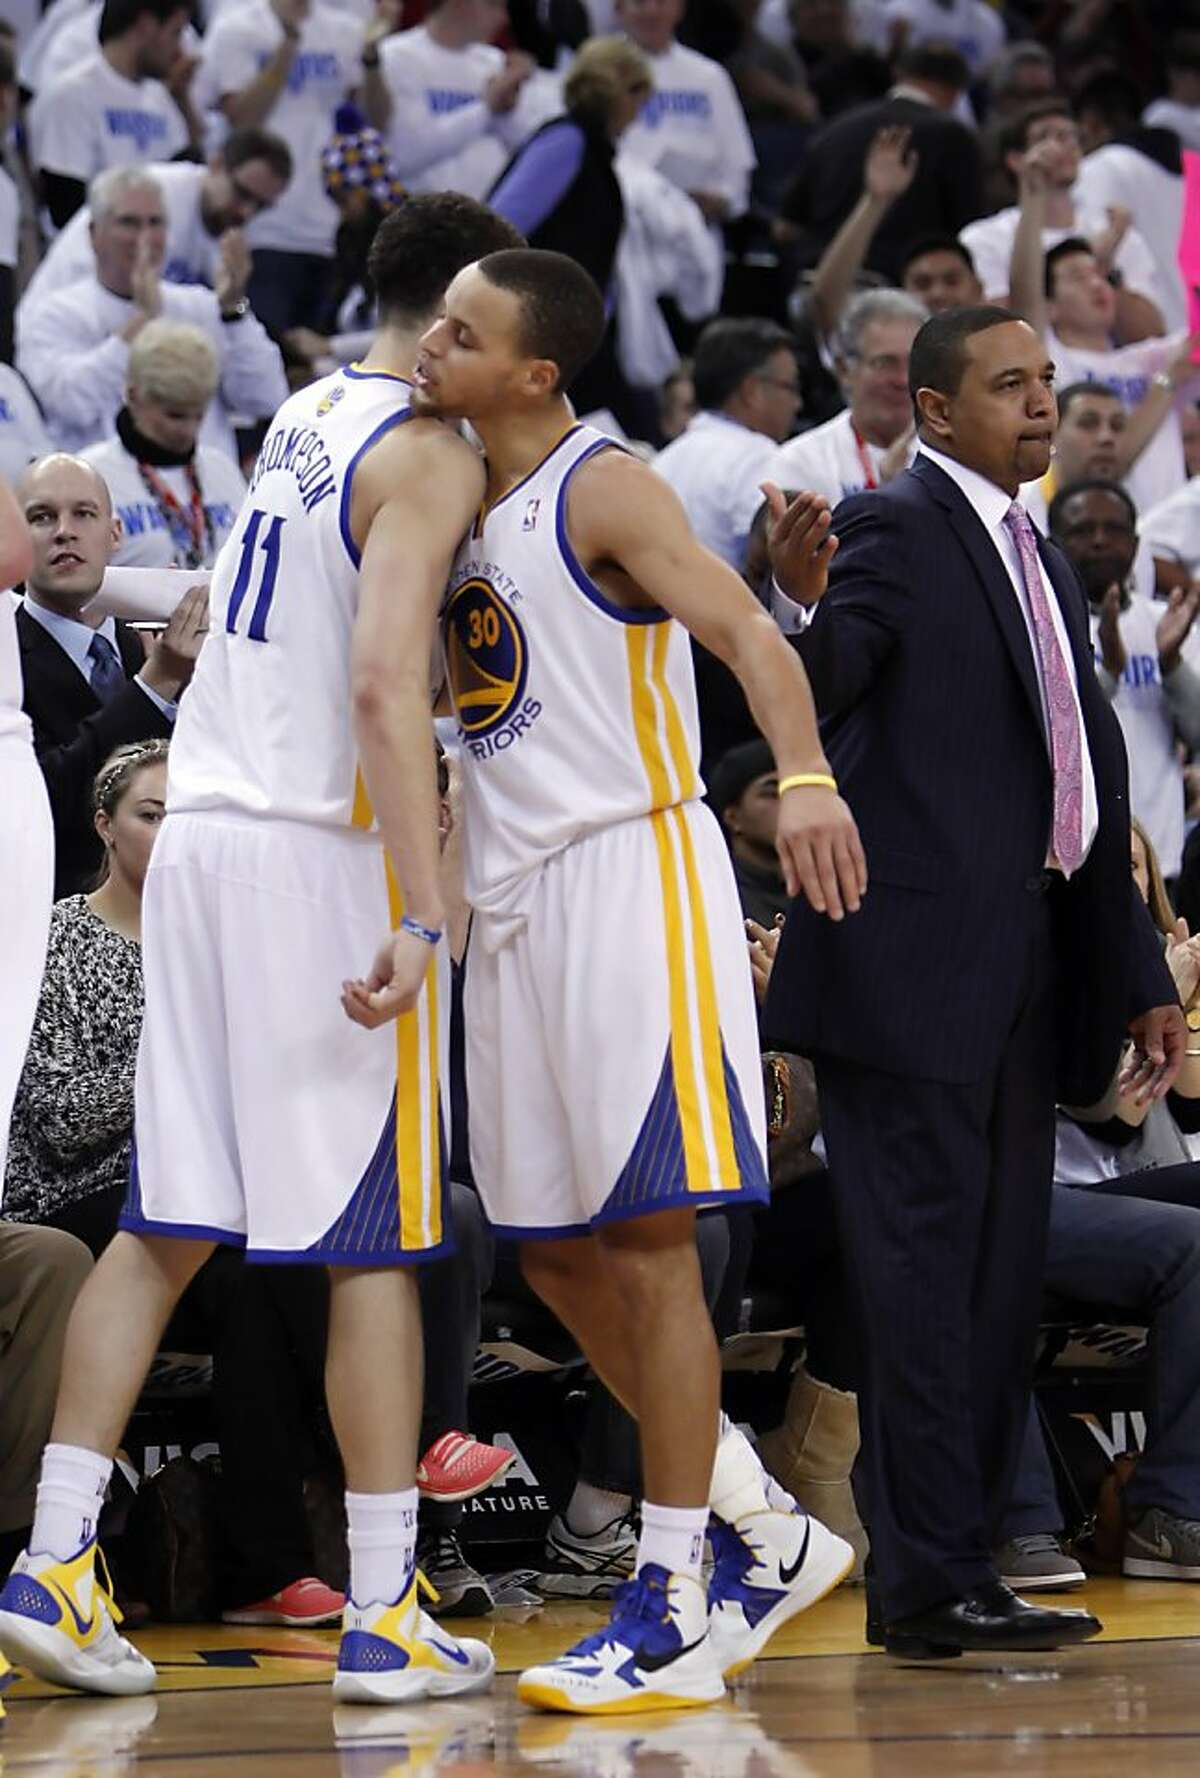 Stephen Curry bumps Klay Thompson after being taken out of the game once it was well in hand at the end of the fourth quarter. The Warriors played the Los Angeles Clippers at Oracle Arena in Oakland, Calif., on Wednesday, January 2, 2013, defeating the Clippers 115-94.